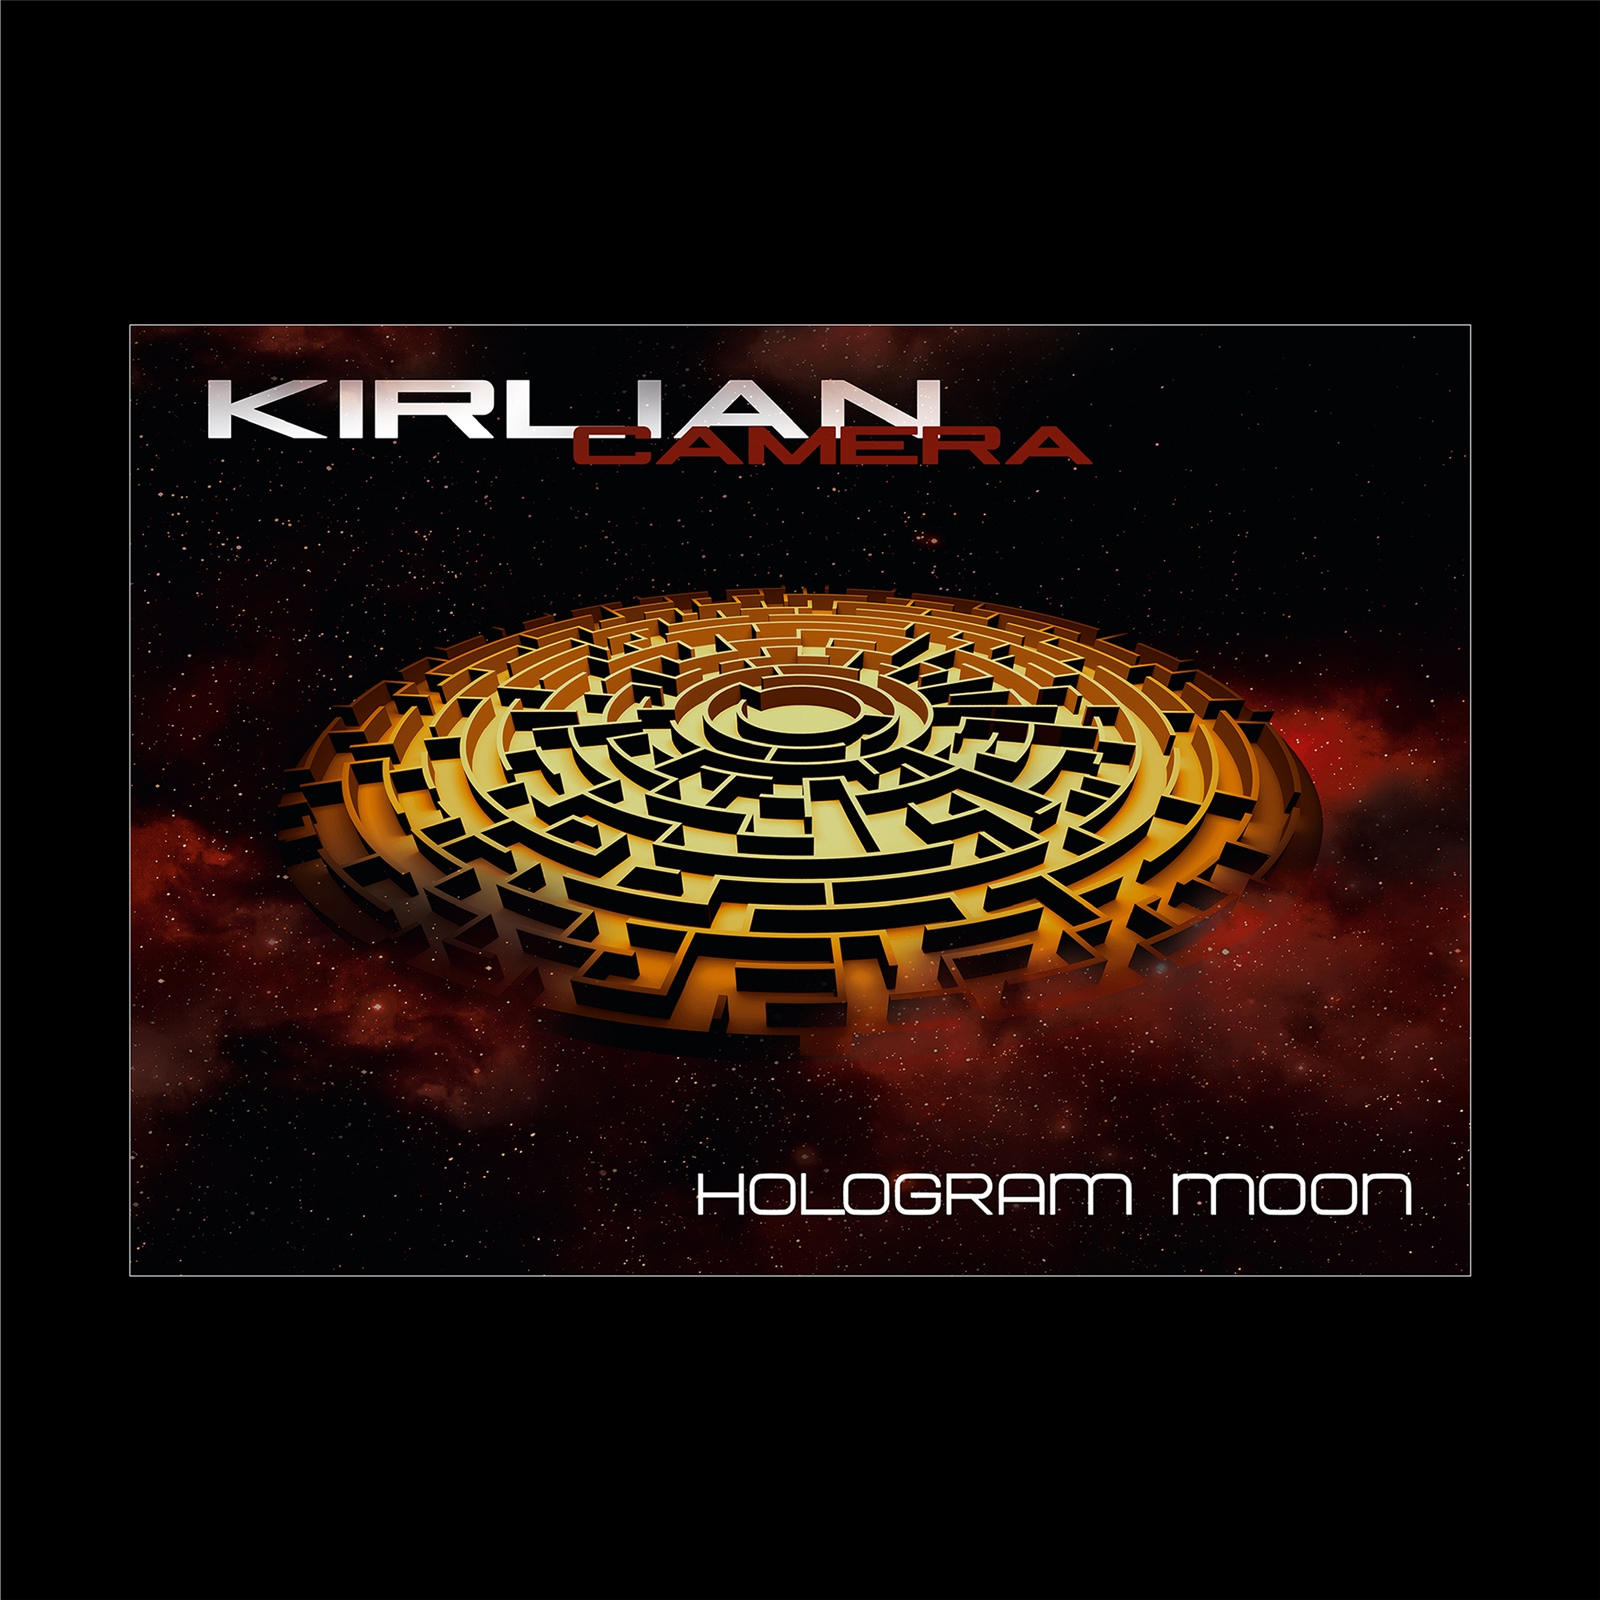 KIRLIAN CAMERA Hologram Moon 2CD BUCH EDITION 2018 LTD.1500 (VÖ 26.01)